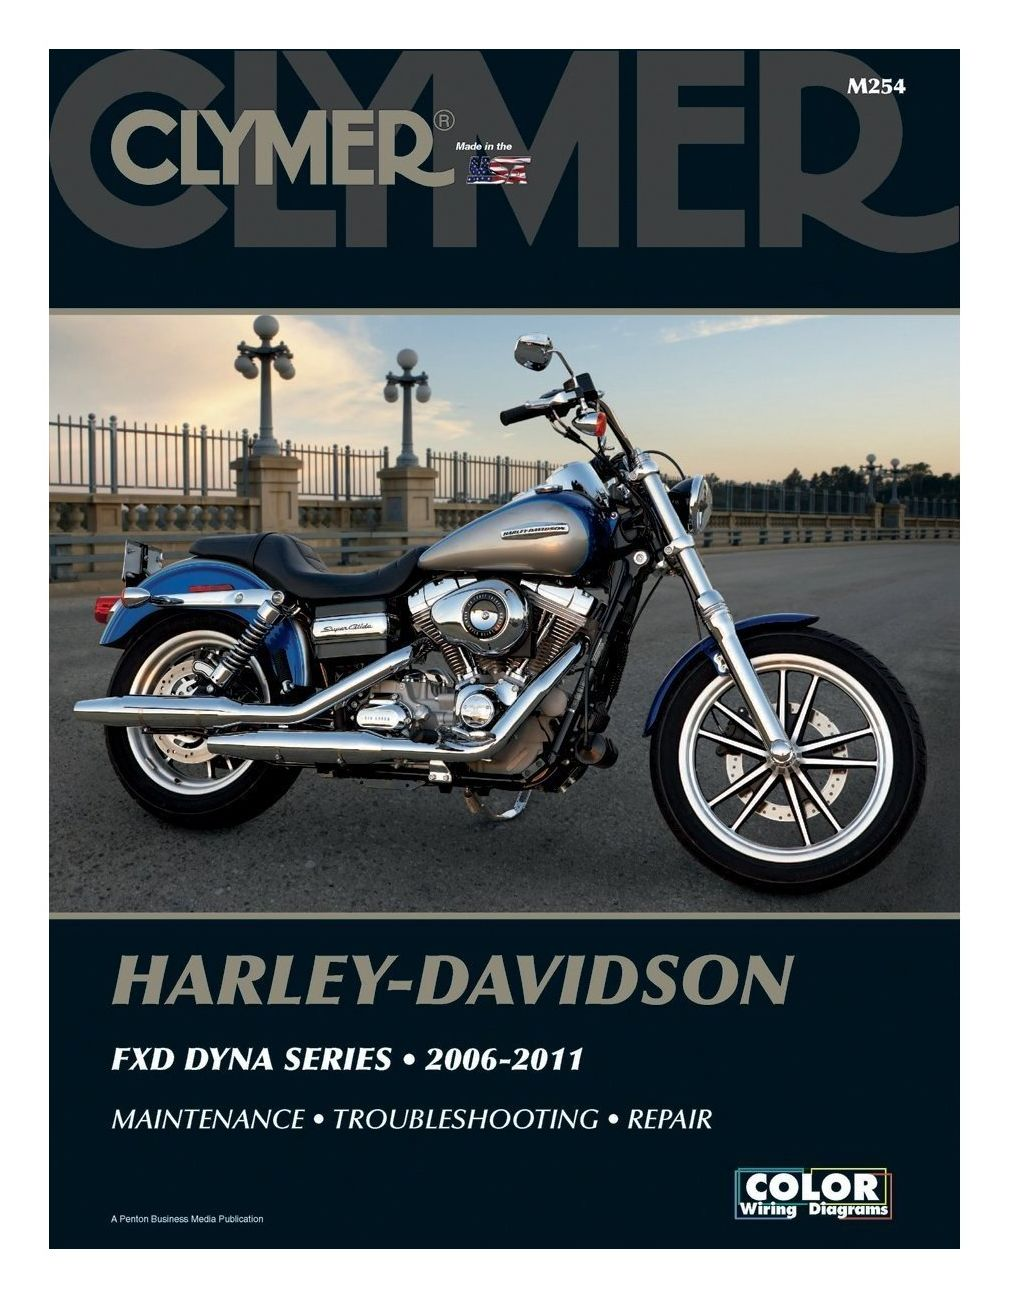 clymer manual harley davidson fxd dyna series 2006 2011 10 off revzilla. Black Bedroom Furniture Sets. Home Design Ideas